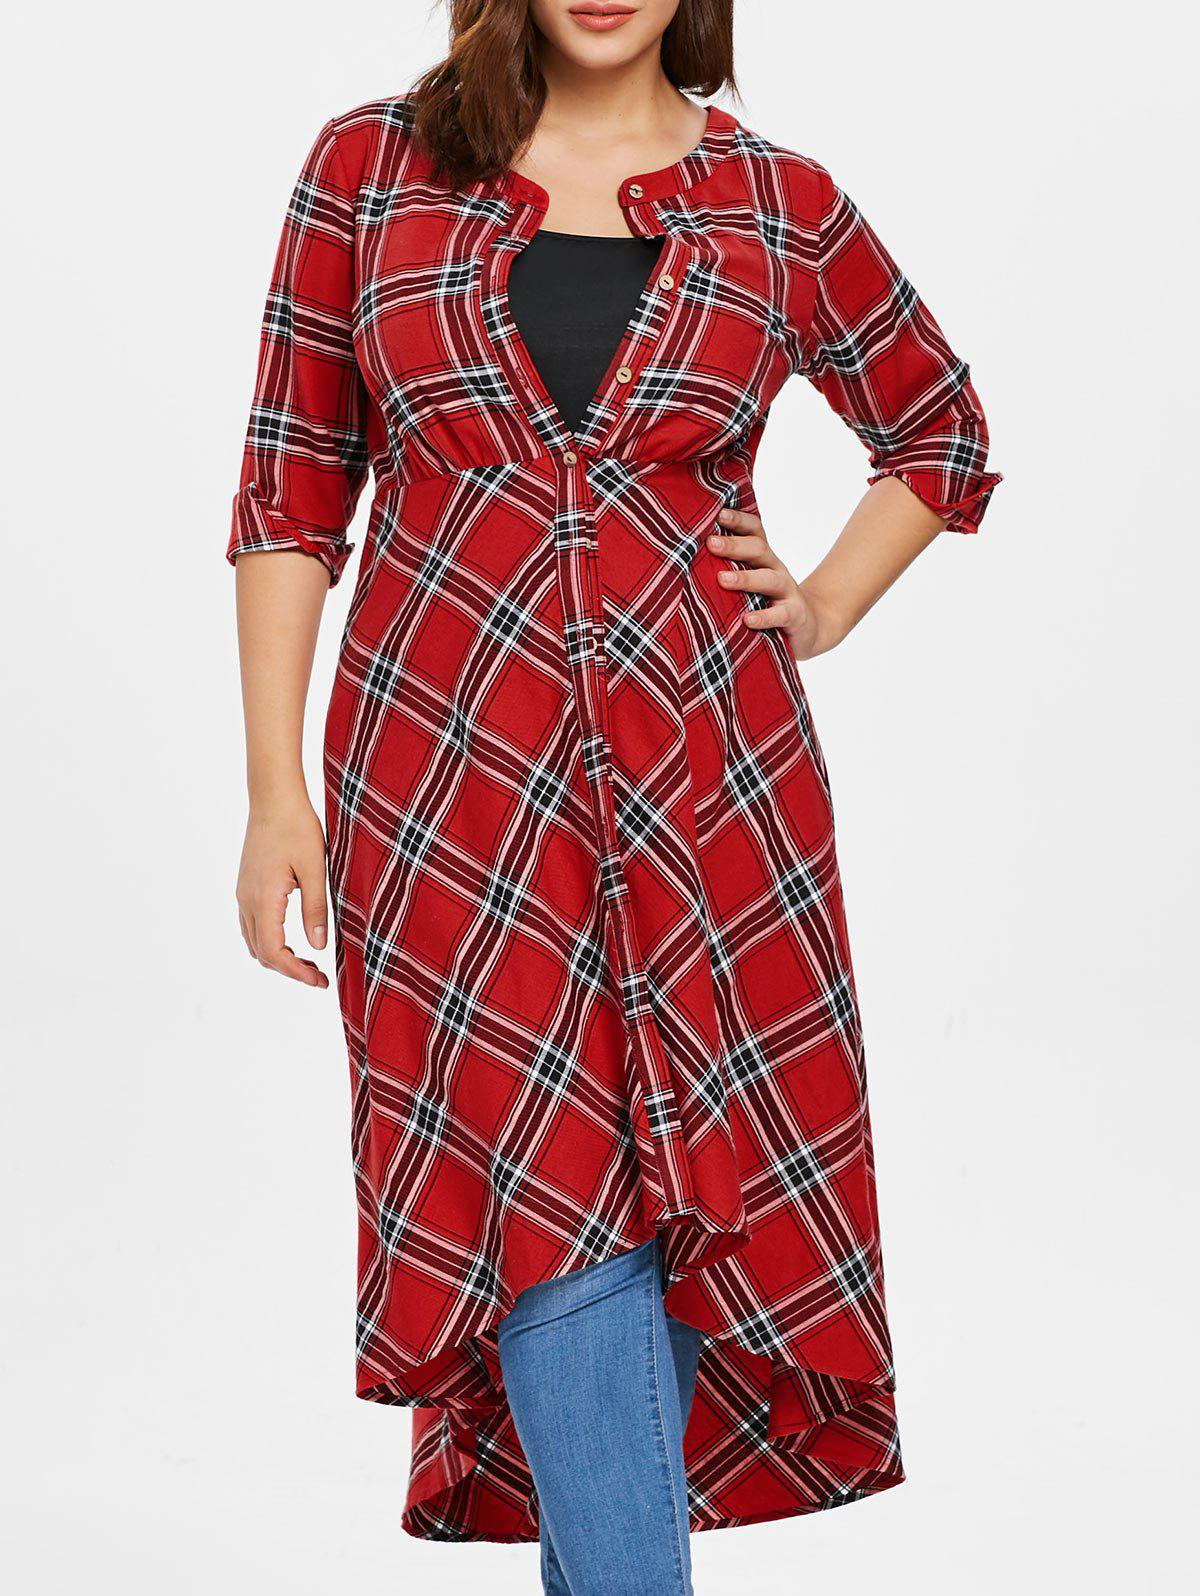 Plus Size Plaid Button Up Maxi Shirt - multicolor L